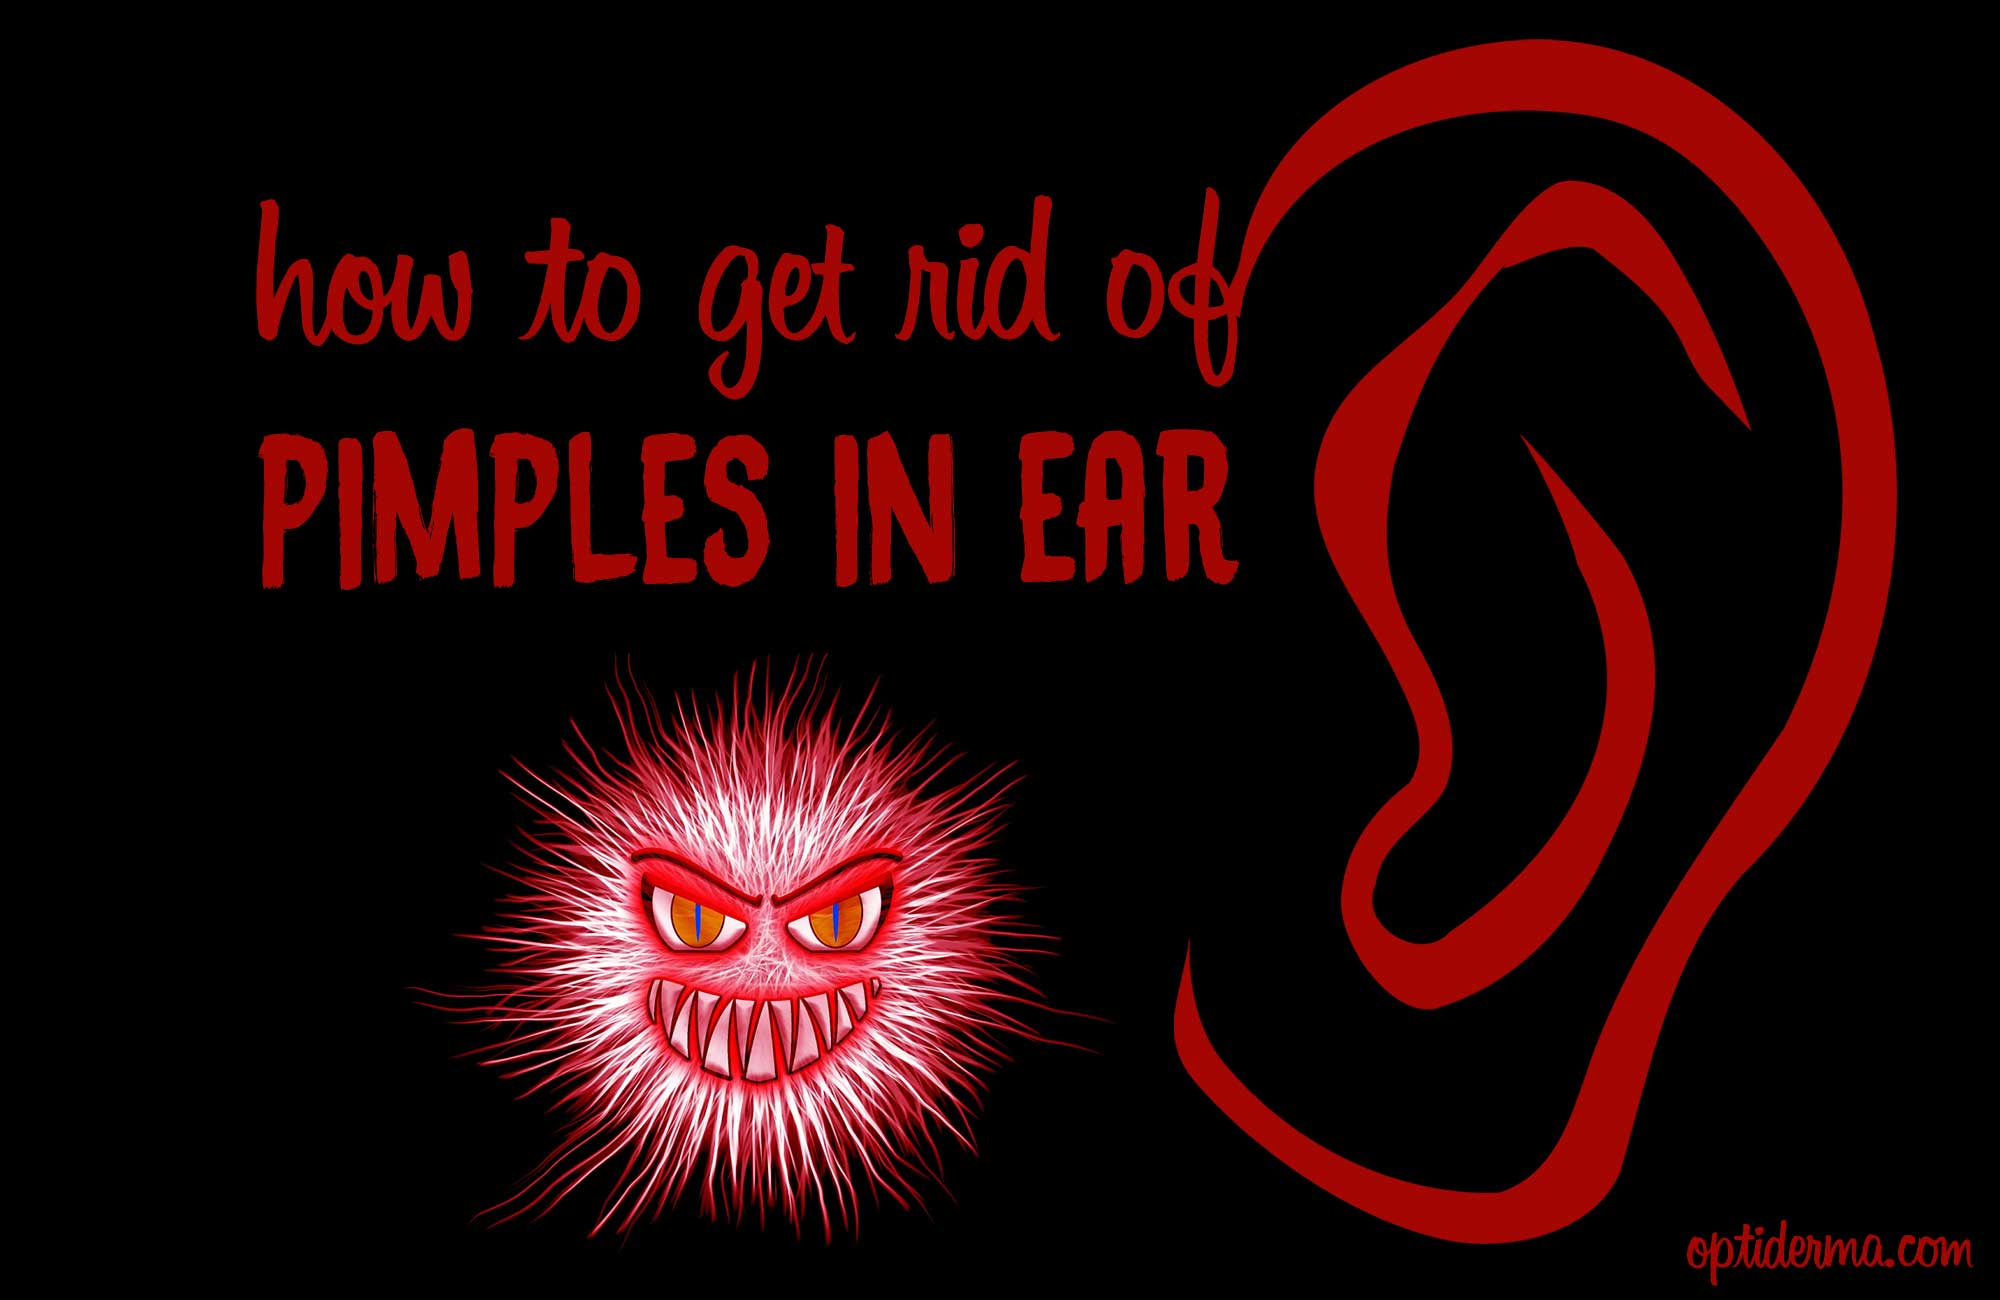 How To Relieve Sore Zits In Ear Amp Get Rid Of Pimples